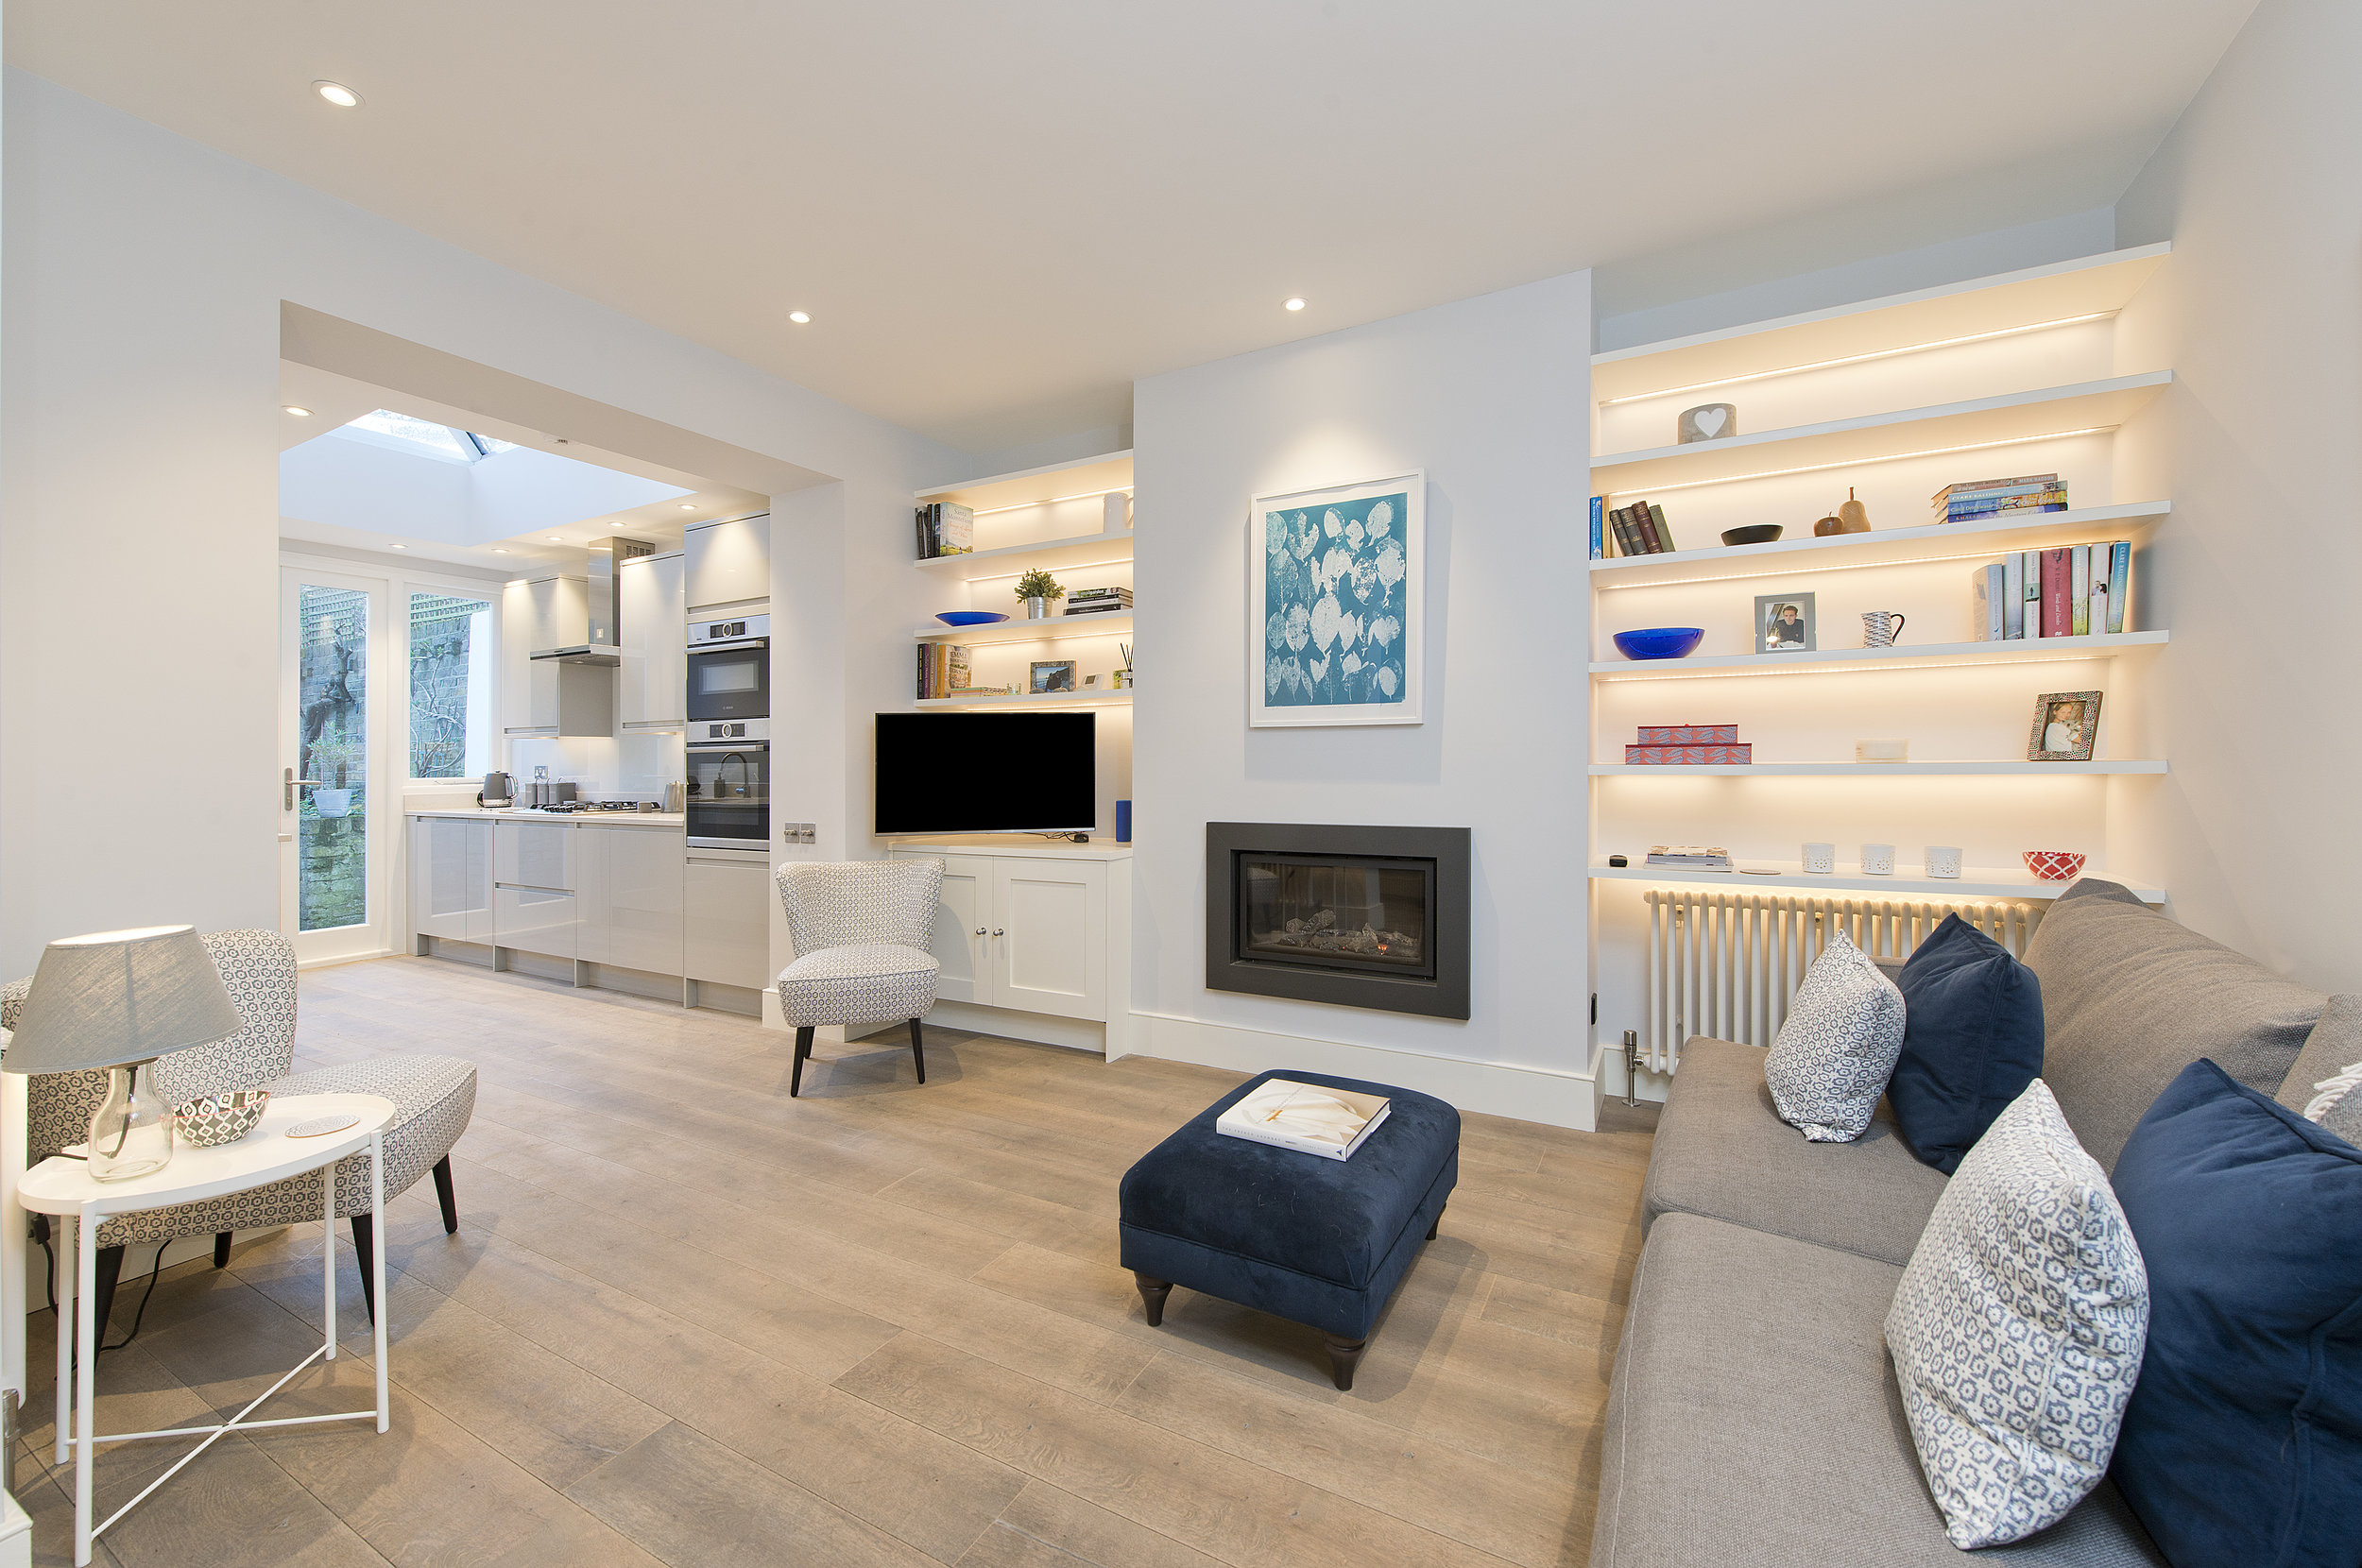 Living Room Renovation in Brook Green, London W14  by The Kitchen and Loft Company